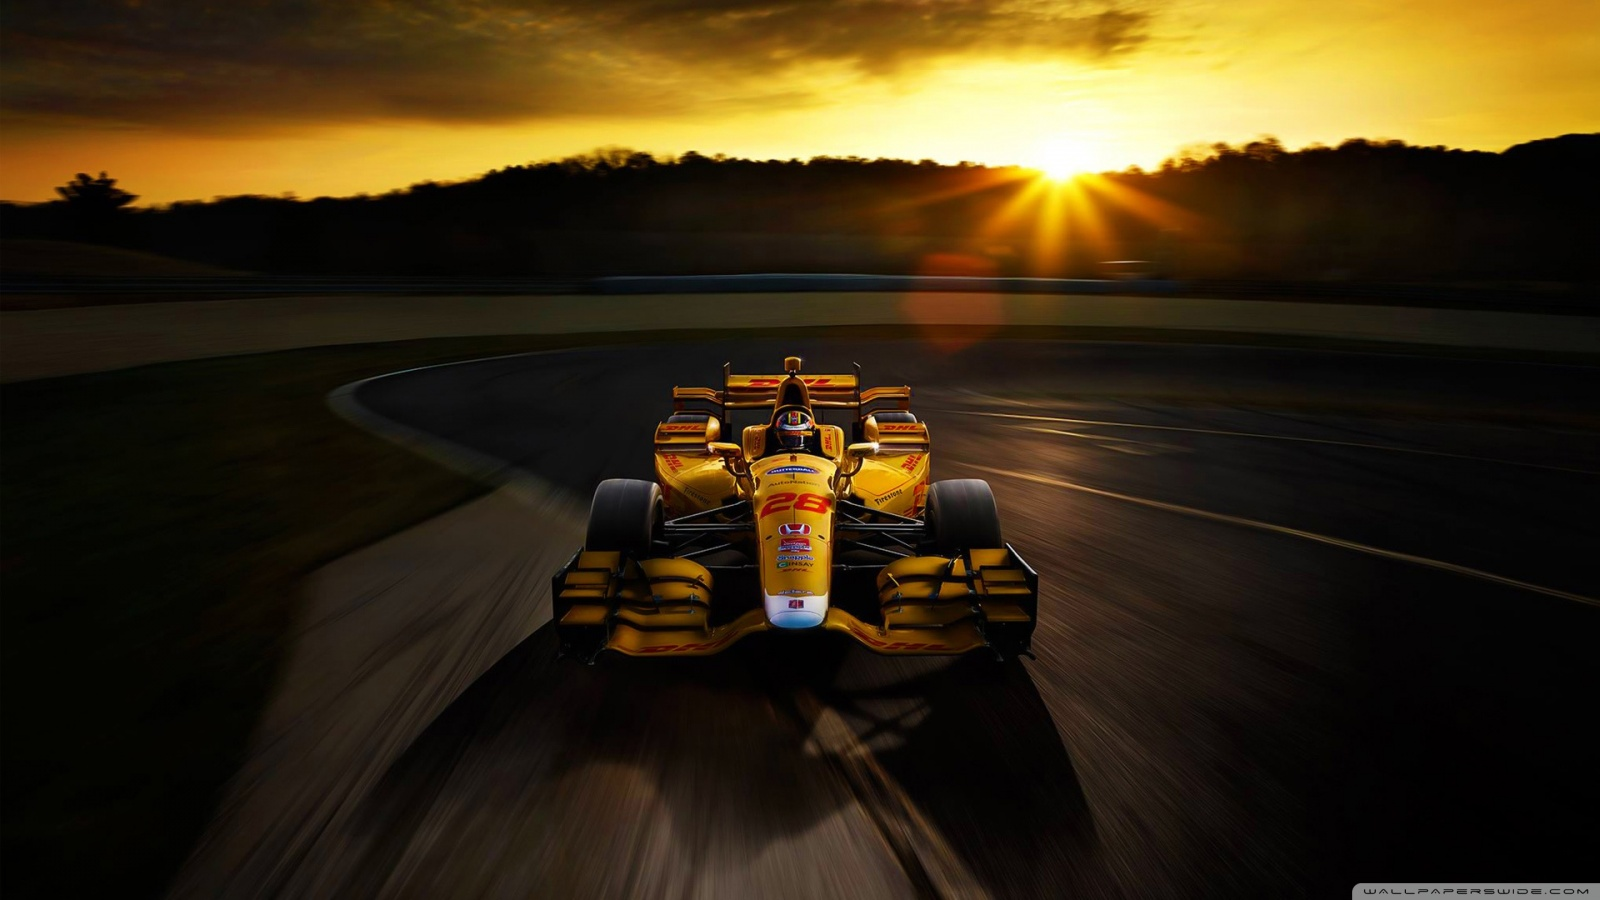 F1 Race Car Wallpaper